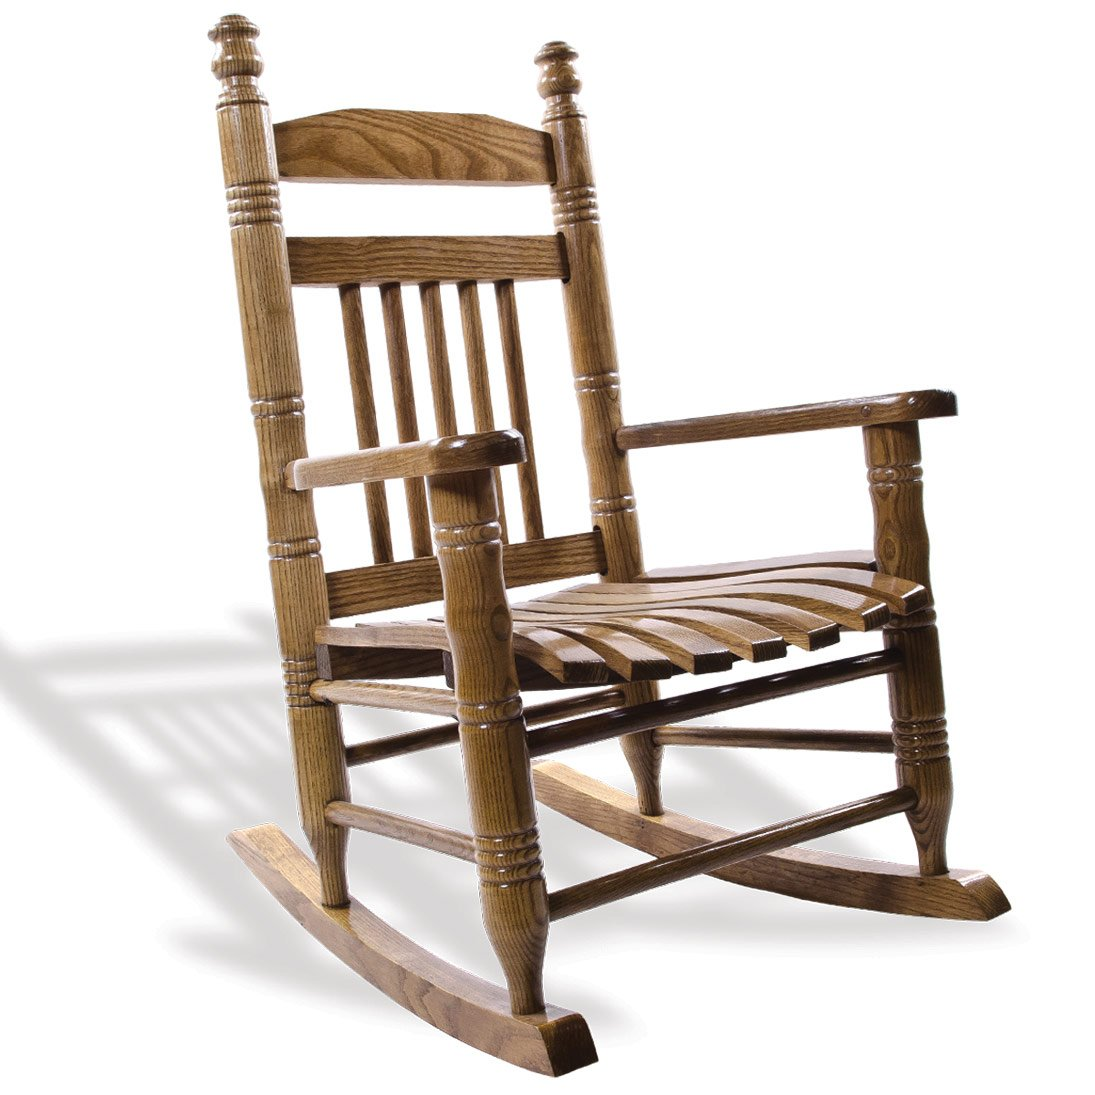 Slat Child Rocking Chair   Hardwood | Home Furniture | Indoor Furniture | Rocking  Chairs | Cracker Barrel Old Country Store   Cracker Barrel Old Country ...